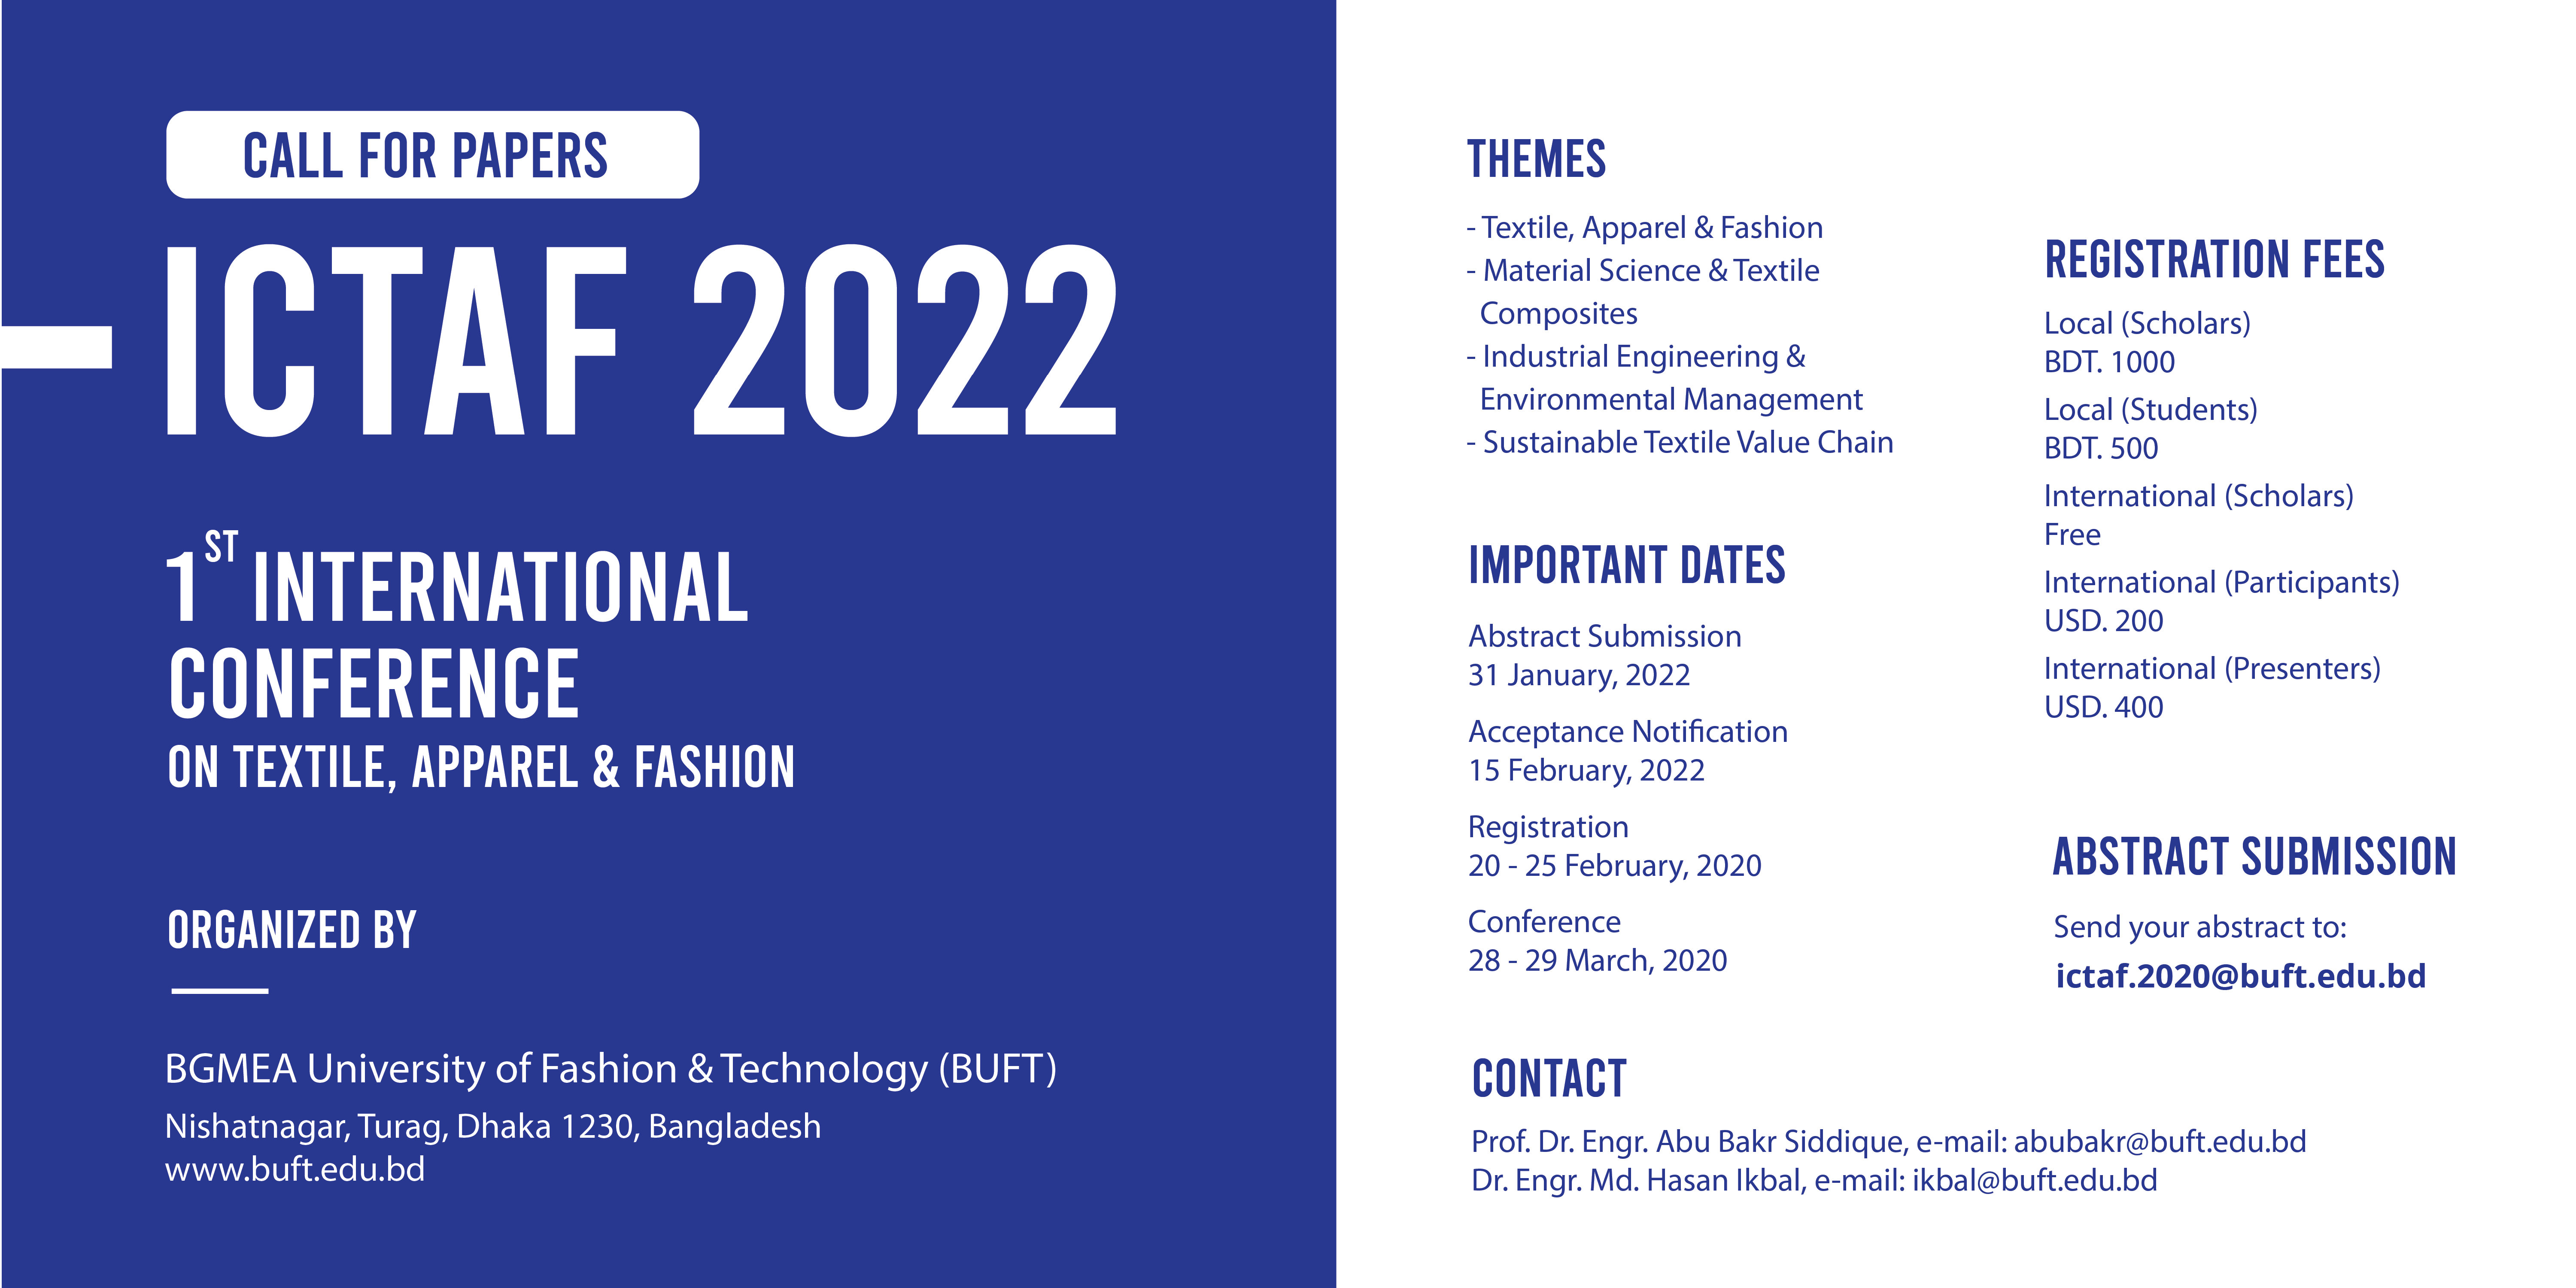 BGMEA University of Fashion & Technology